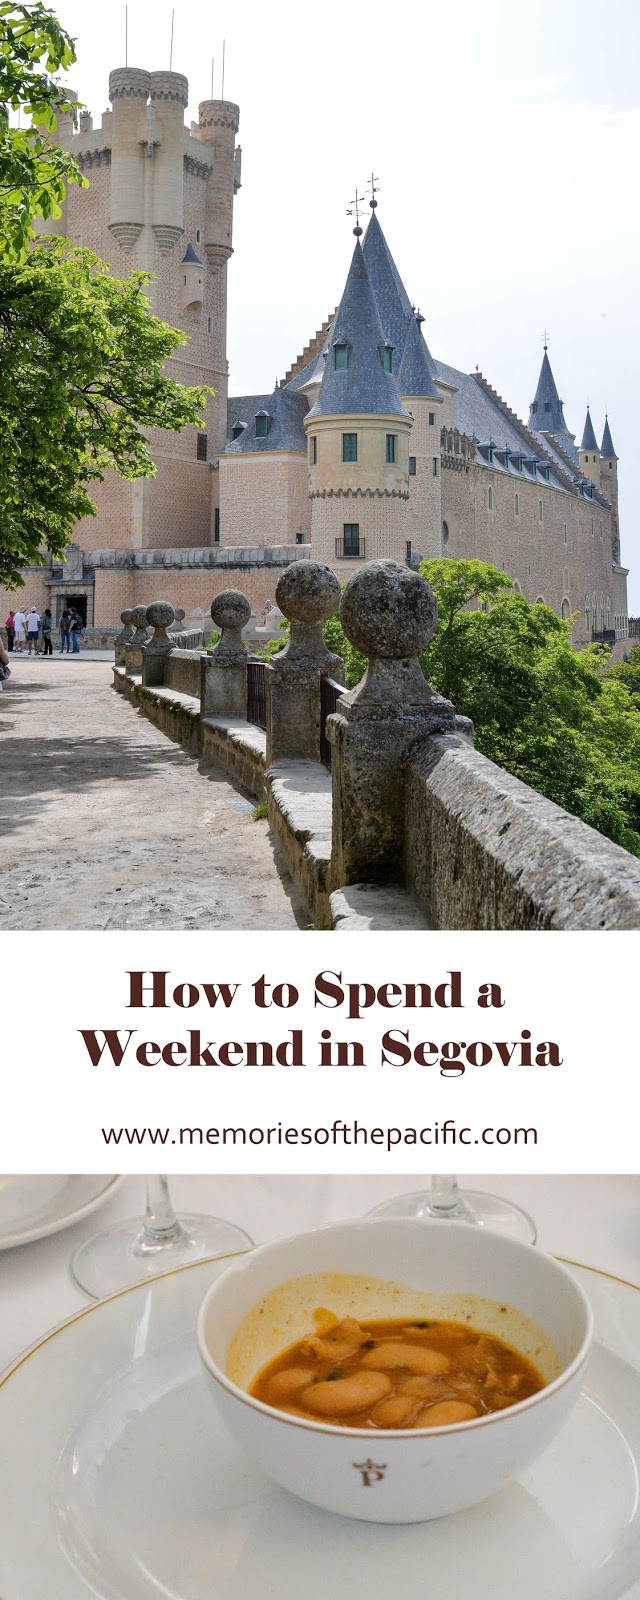 segovia spain travel guide weekend alcazar judiones